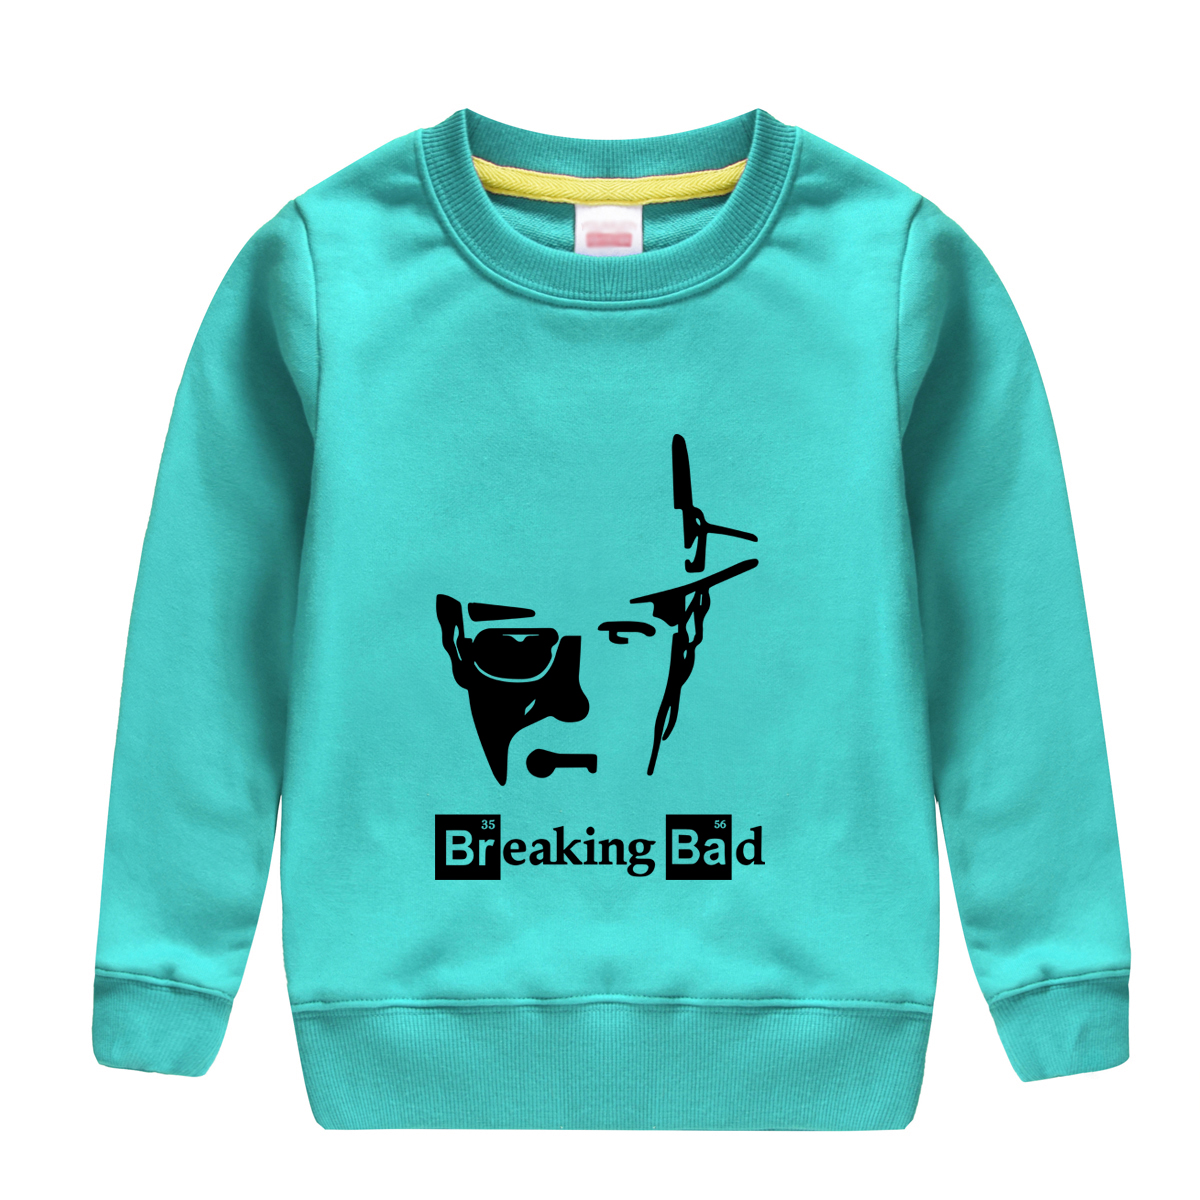 hot sale breaking bad pattern printed 2018 popular winter autumn cotton sweatshirt baby boy hoodie clothing full sleeve outwear